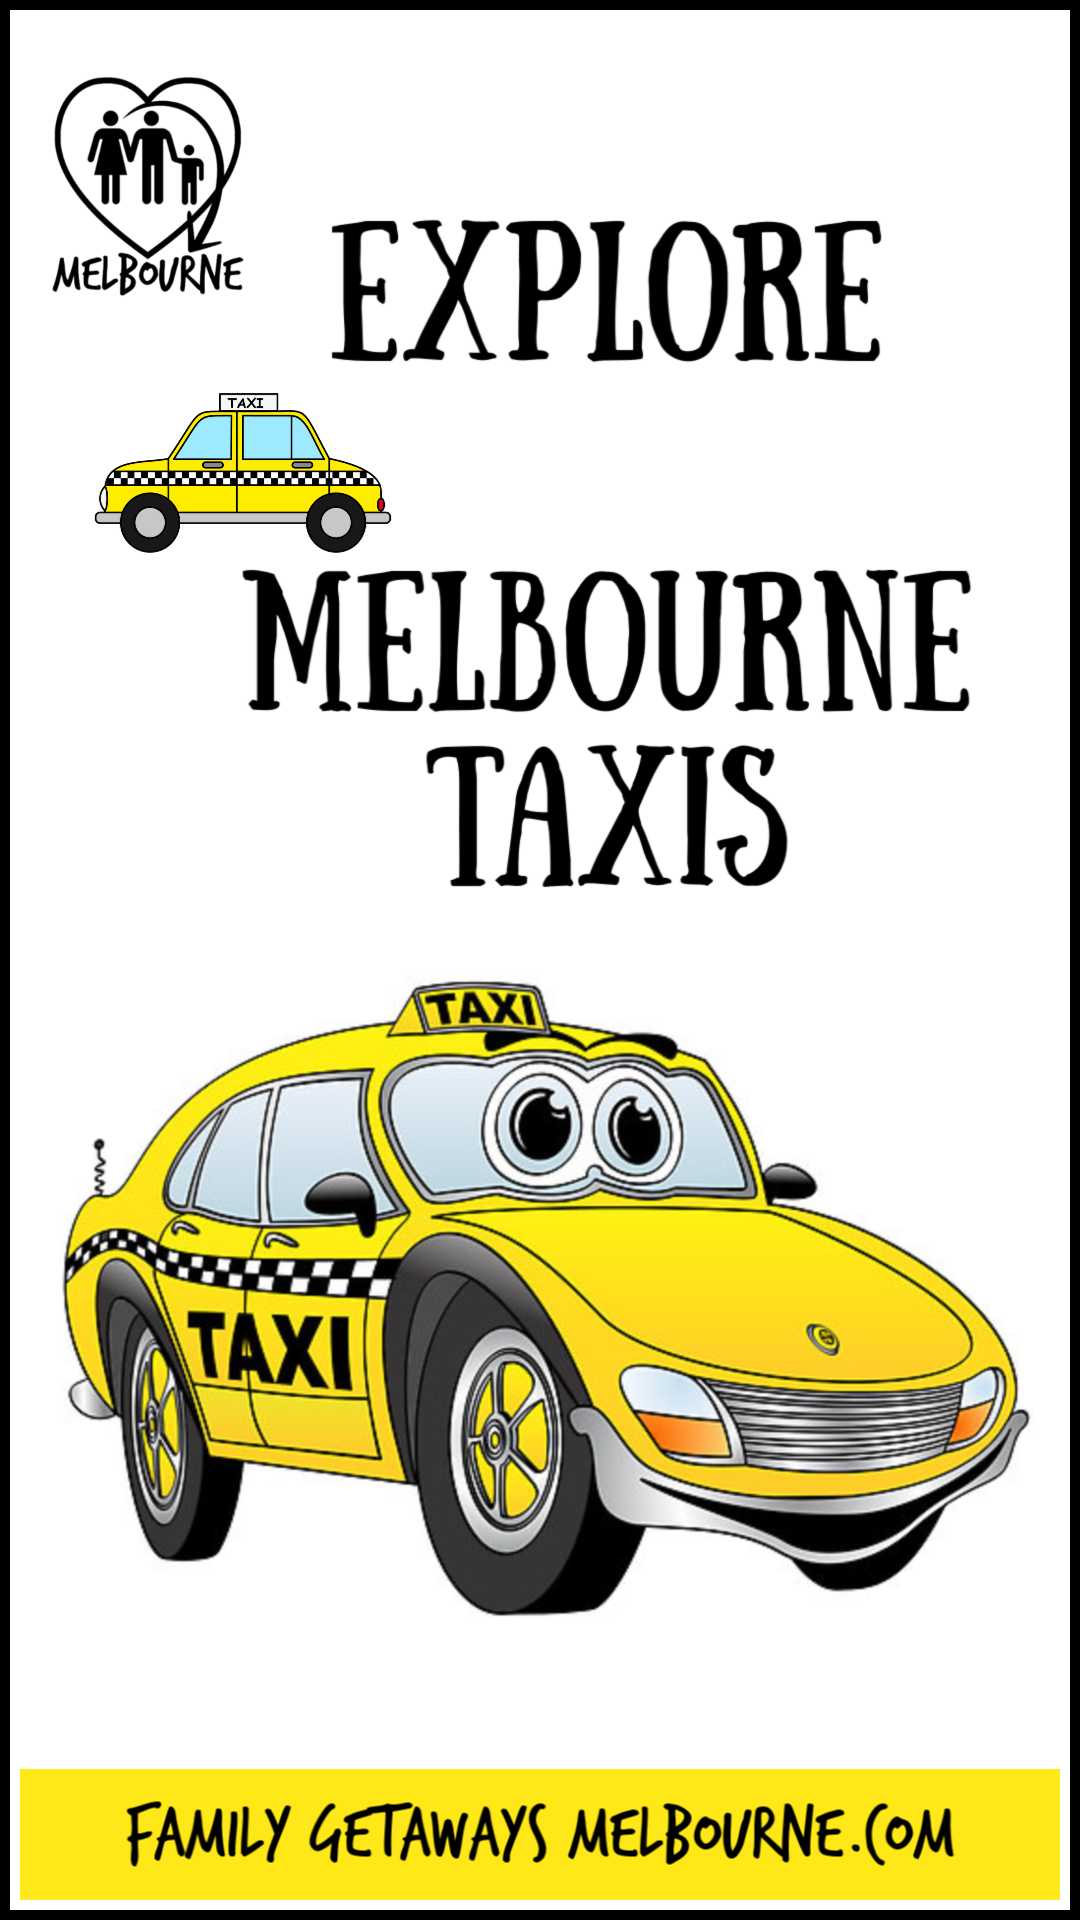 Melbourne taxi cabs are safe ways to transport yourself around Melbourne